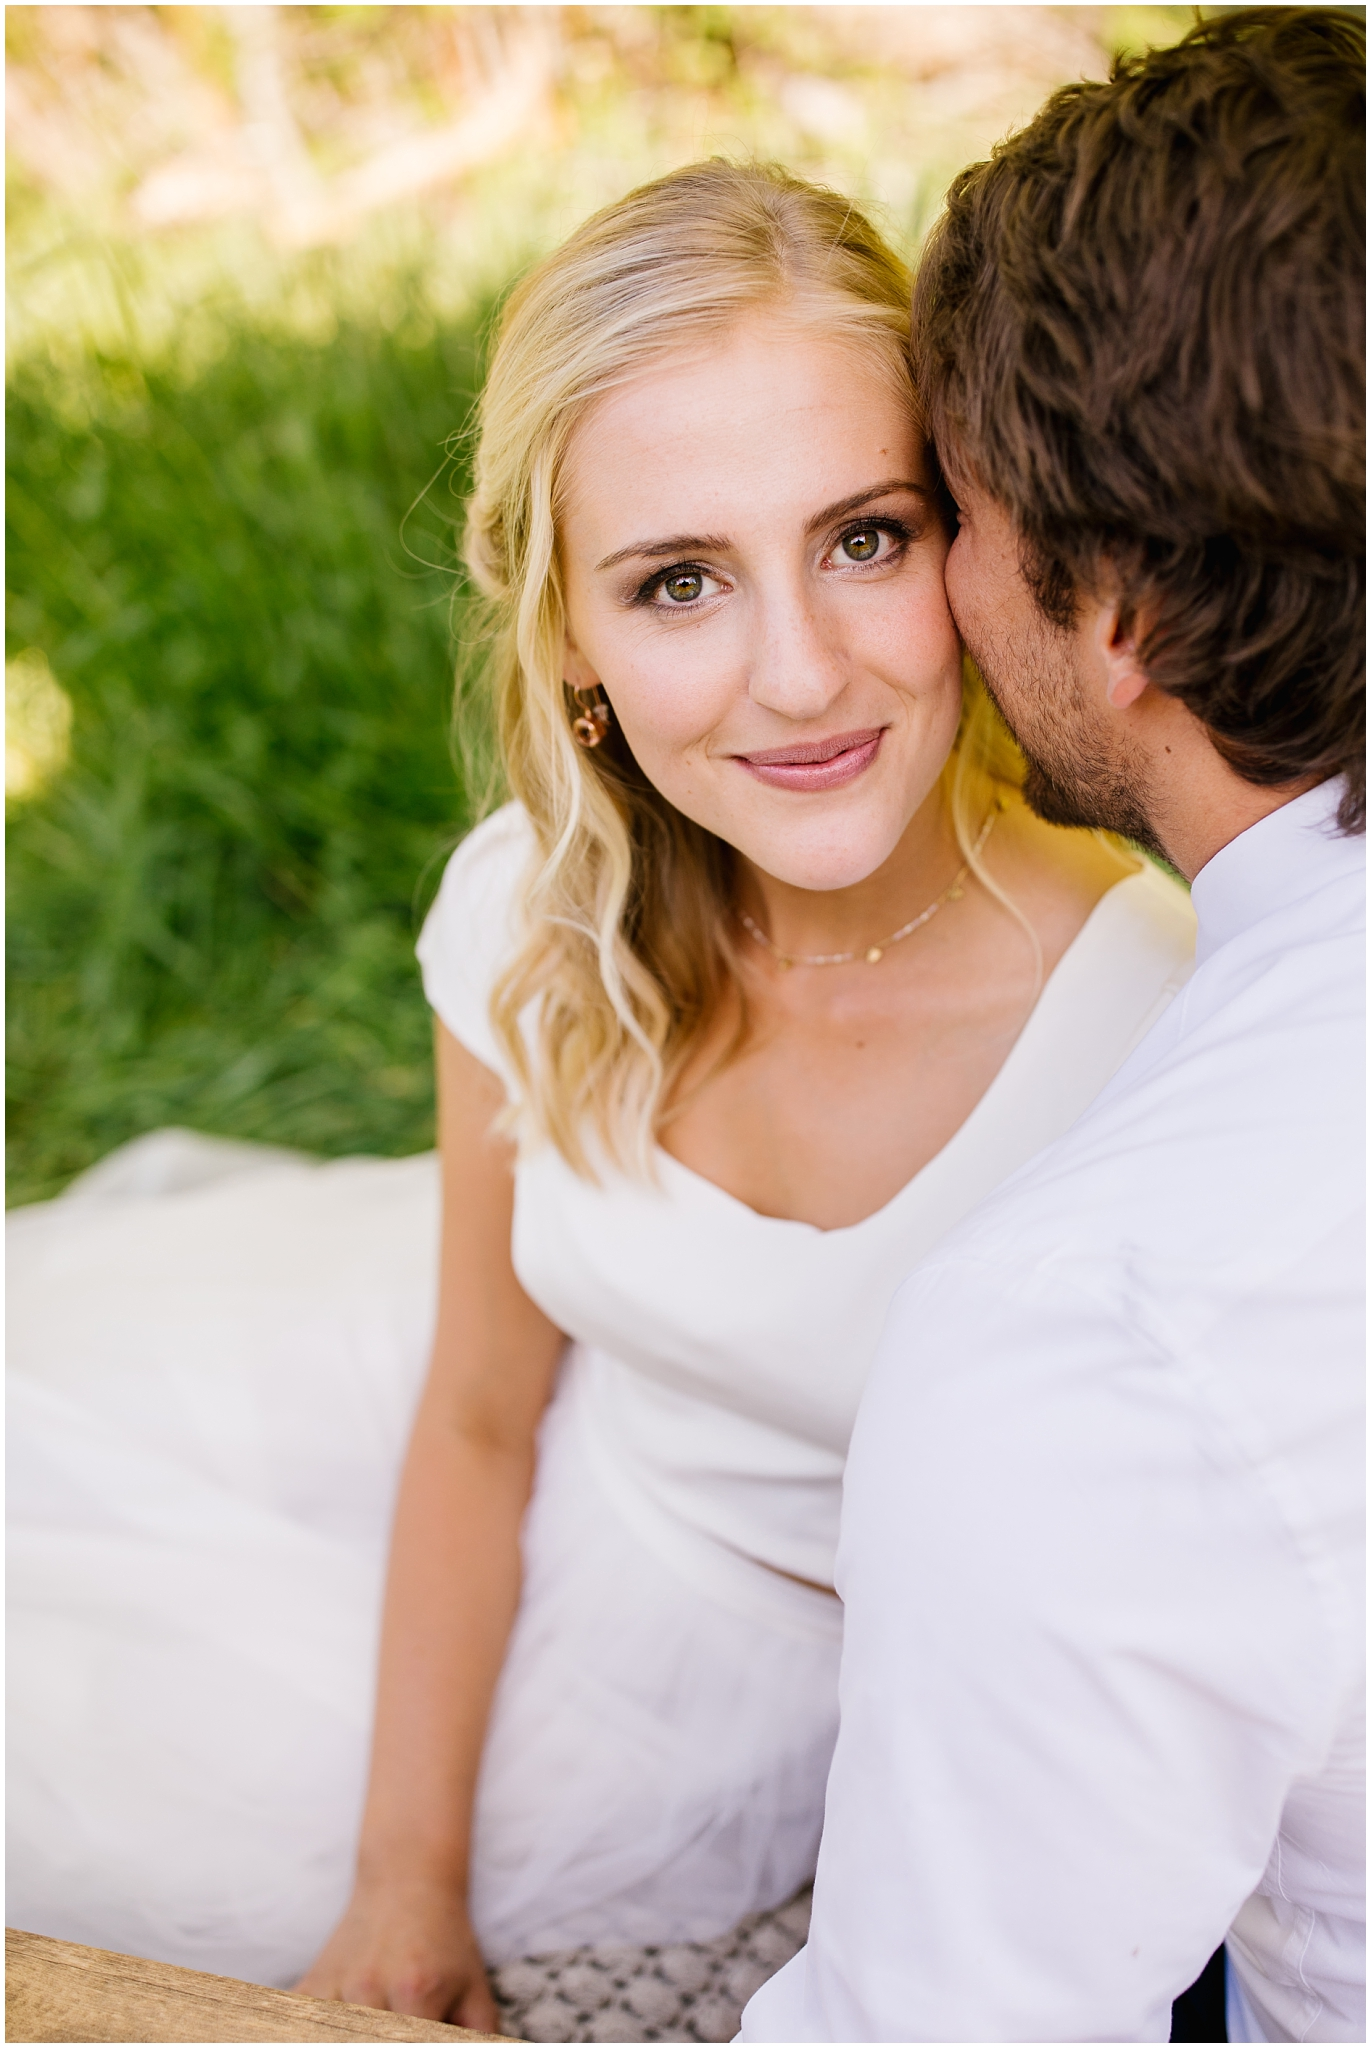 LakeShoot-32_Lizzie-B-Imagery-Utah-Wedding-Photographer-Salt-Lake-City-Park-City-Oakley.jpg